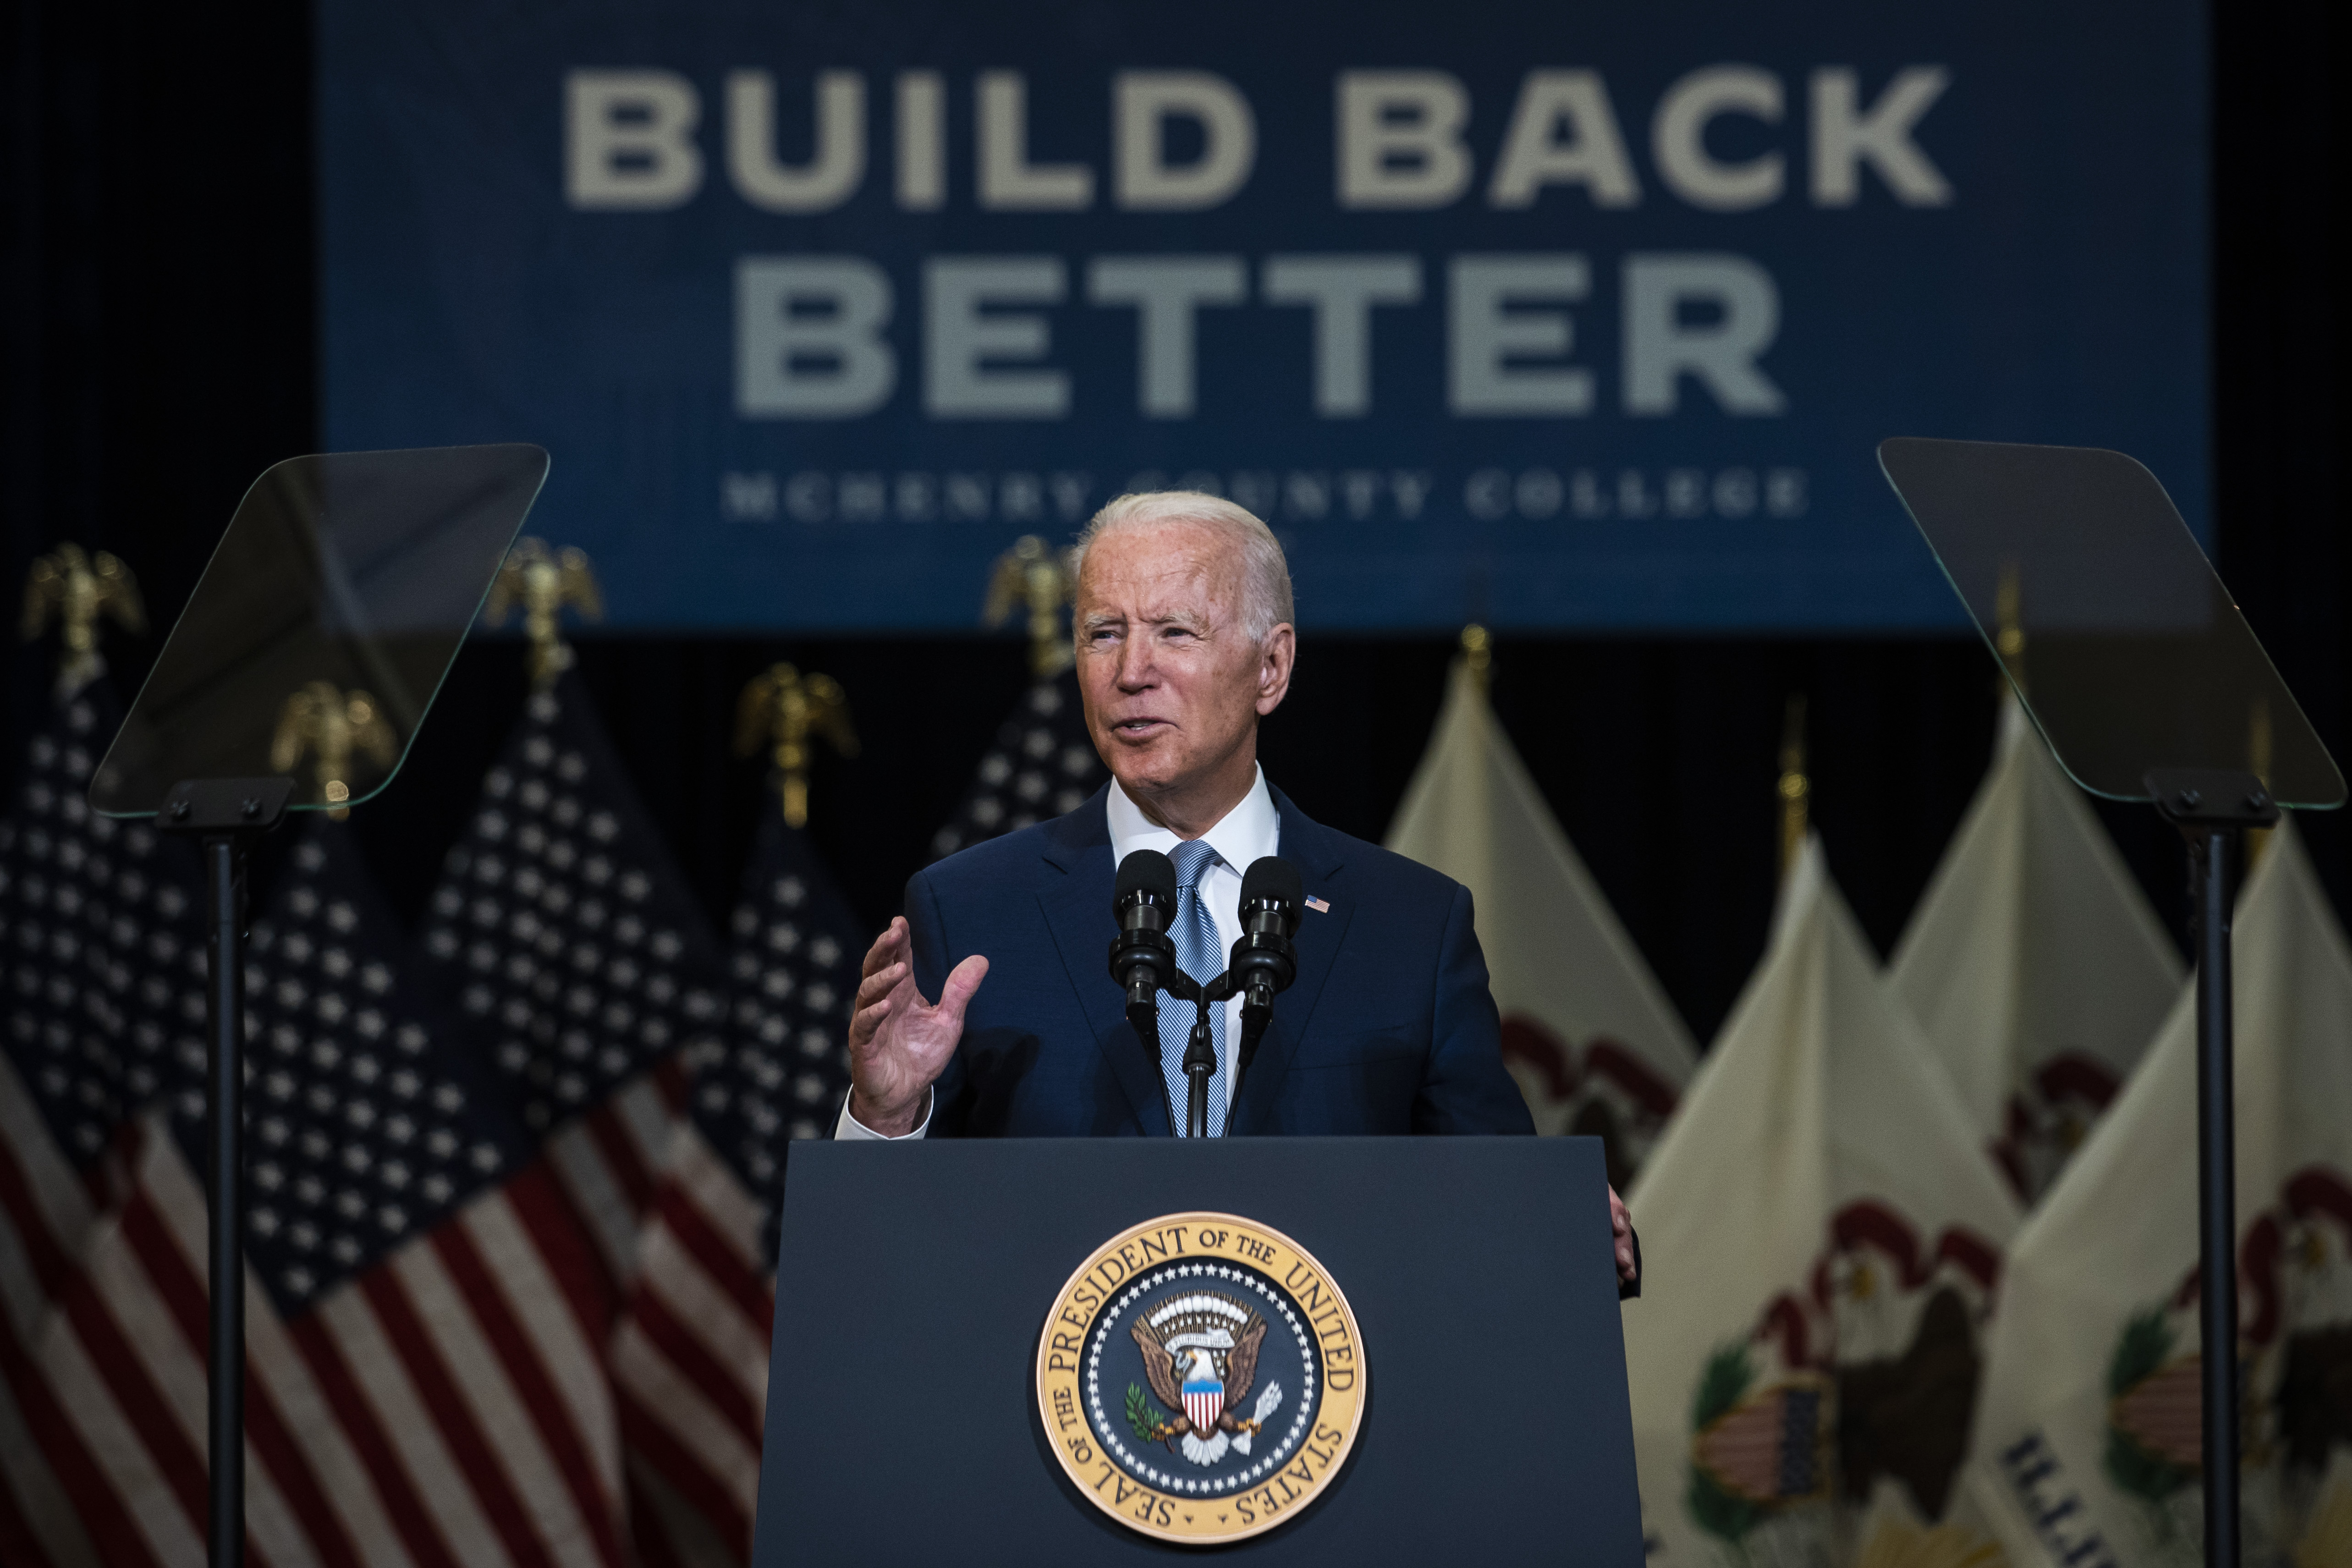 President Joe Biden speaks at McHenry County College in Crystal Lake on Wednesday, July 7, 2021.